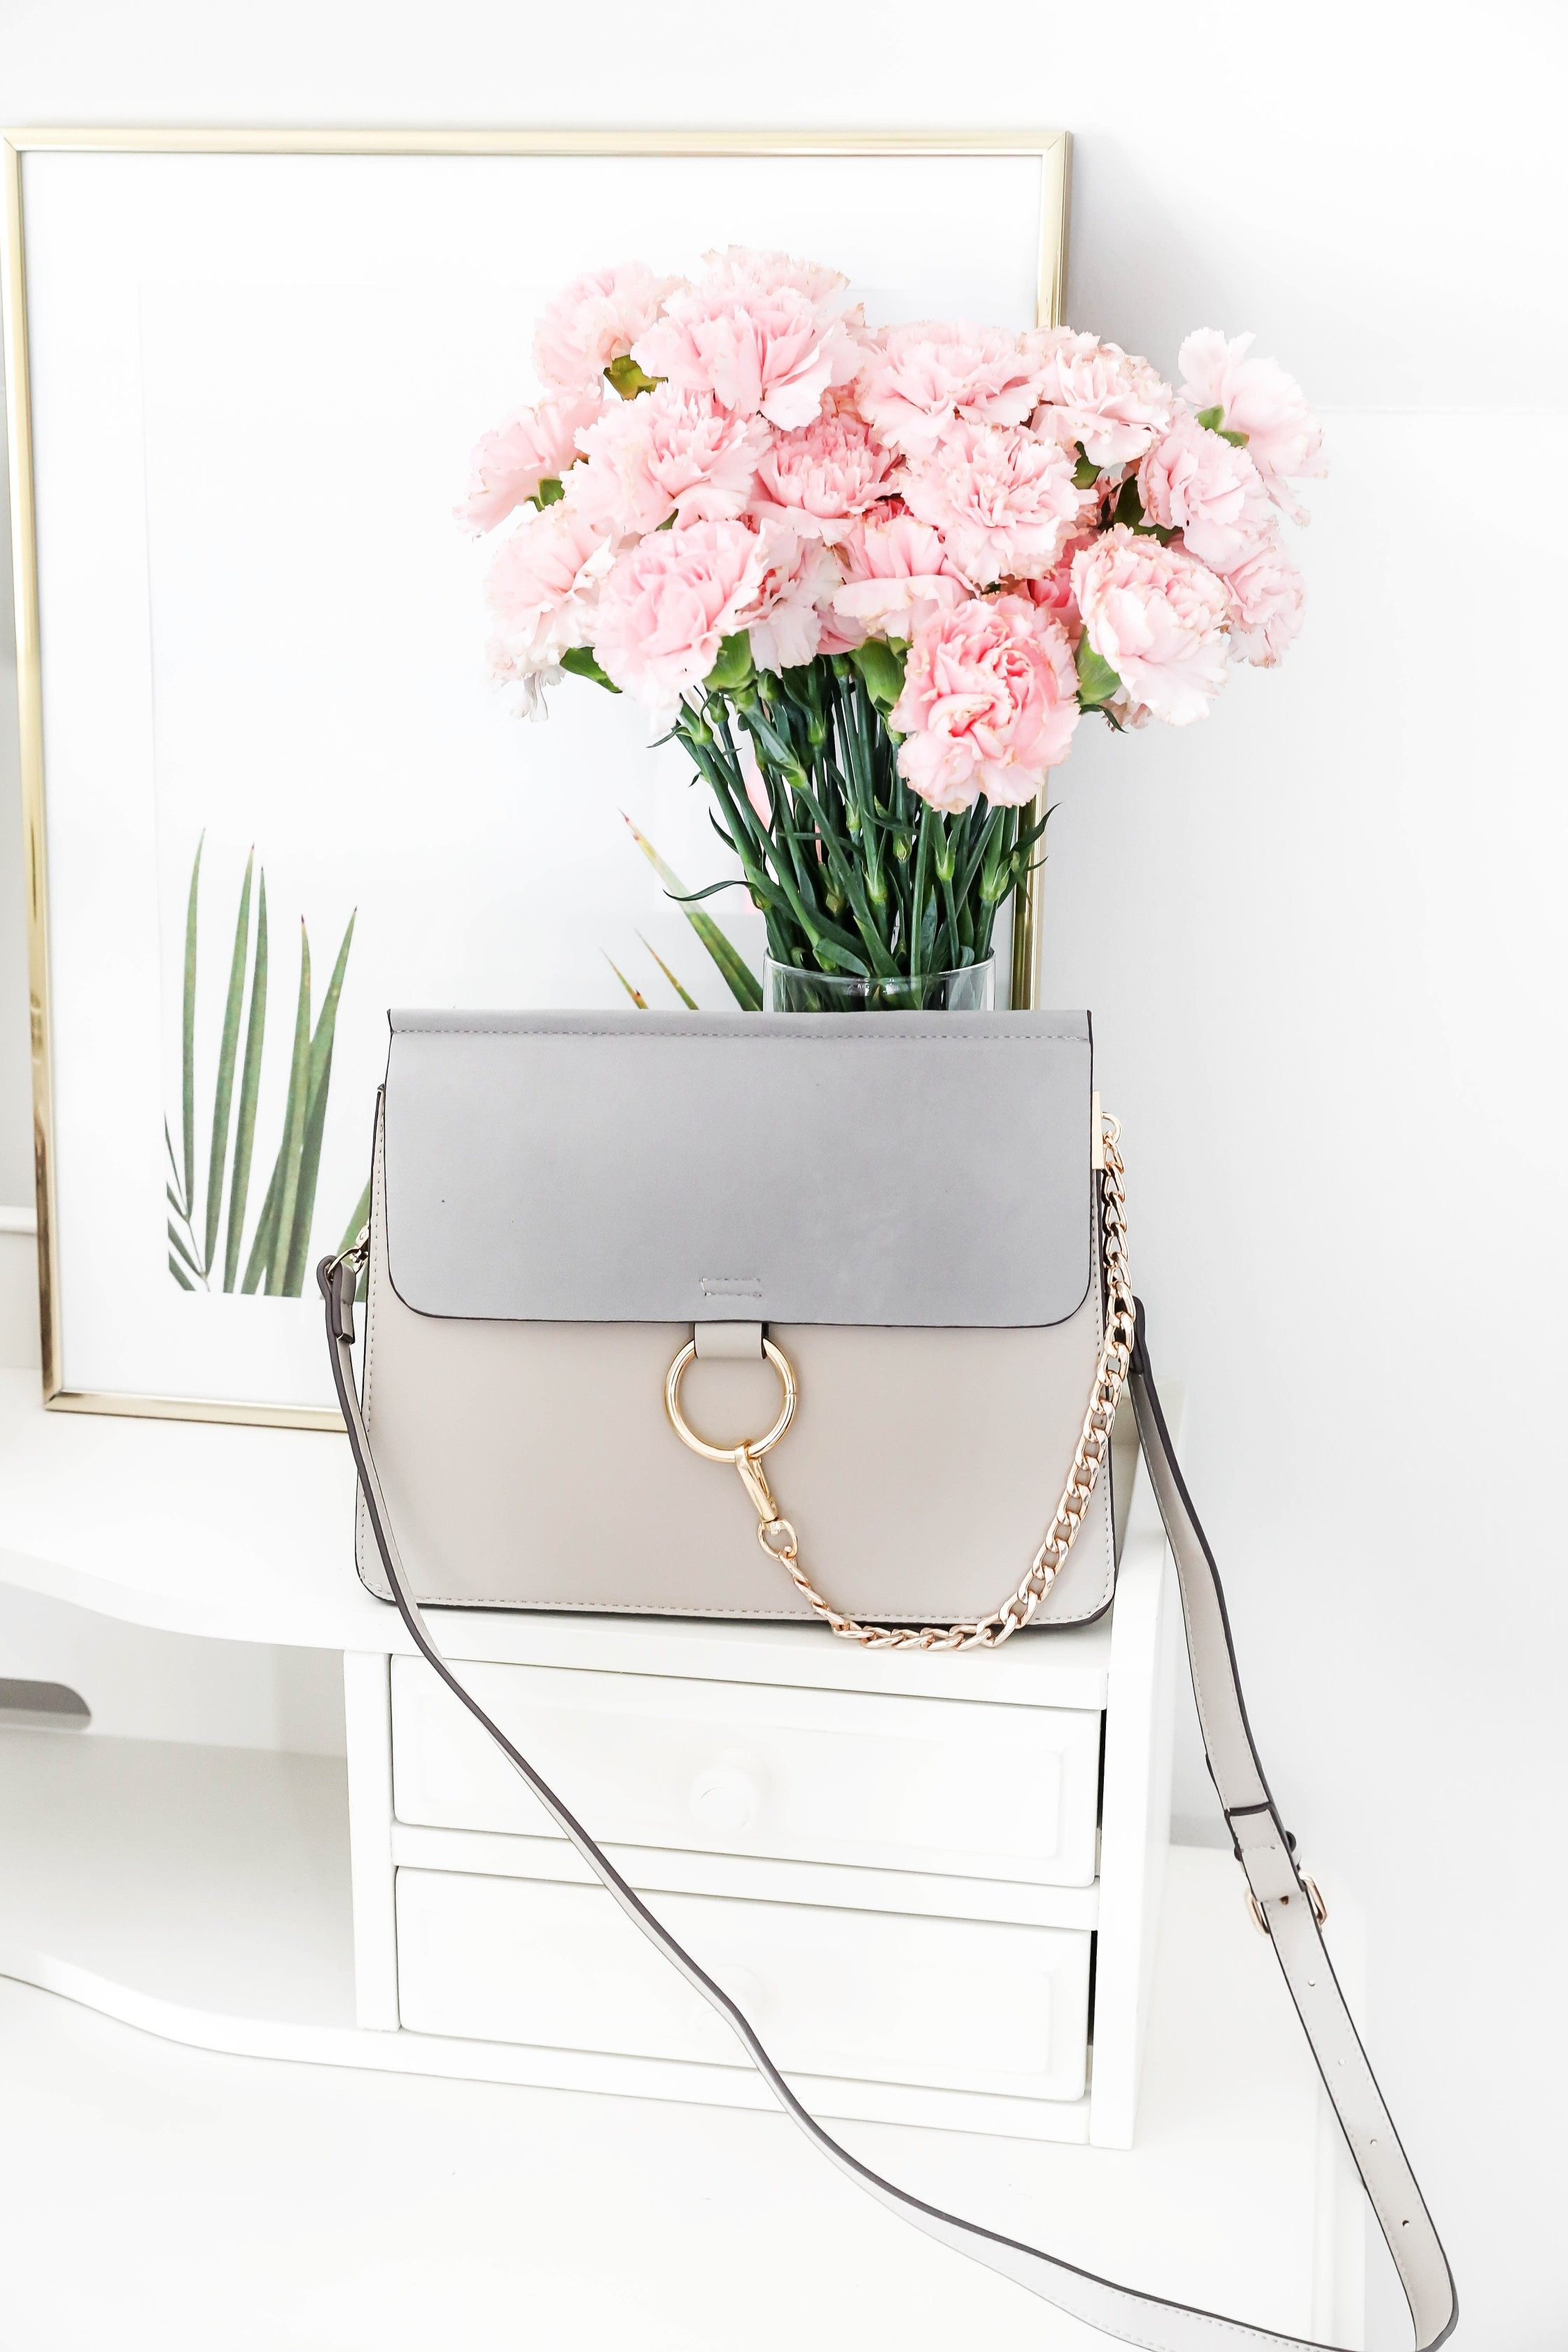 Amazon Designer handbag dupes! Tips on how to find cute designer dupes like this Chloé bag, Louis Vuitton purse, and Chanel dupes! More shopping tips on fashion blog daily dose of charm by lauren lindmark